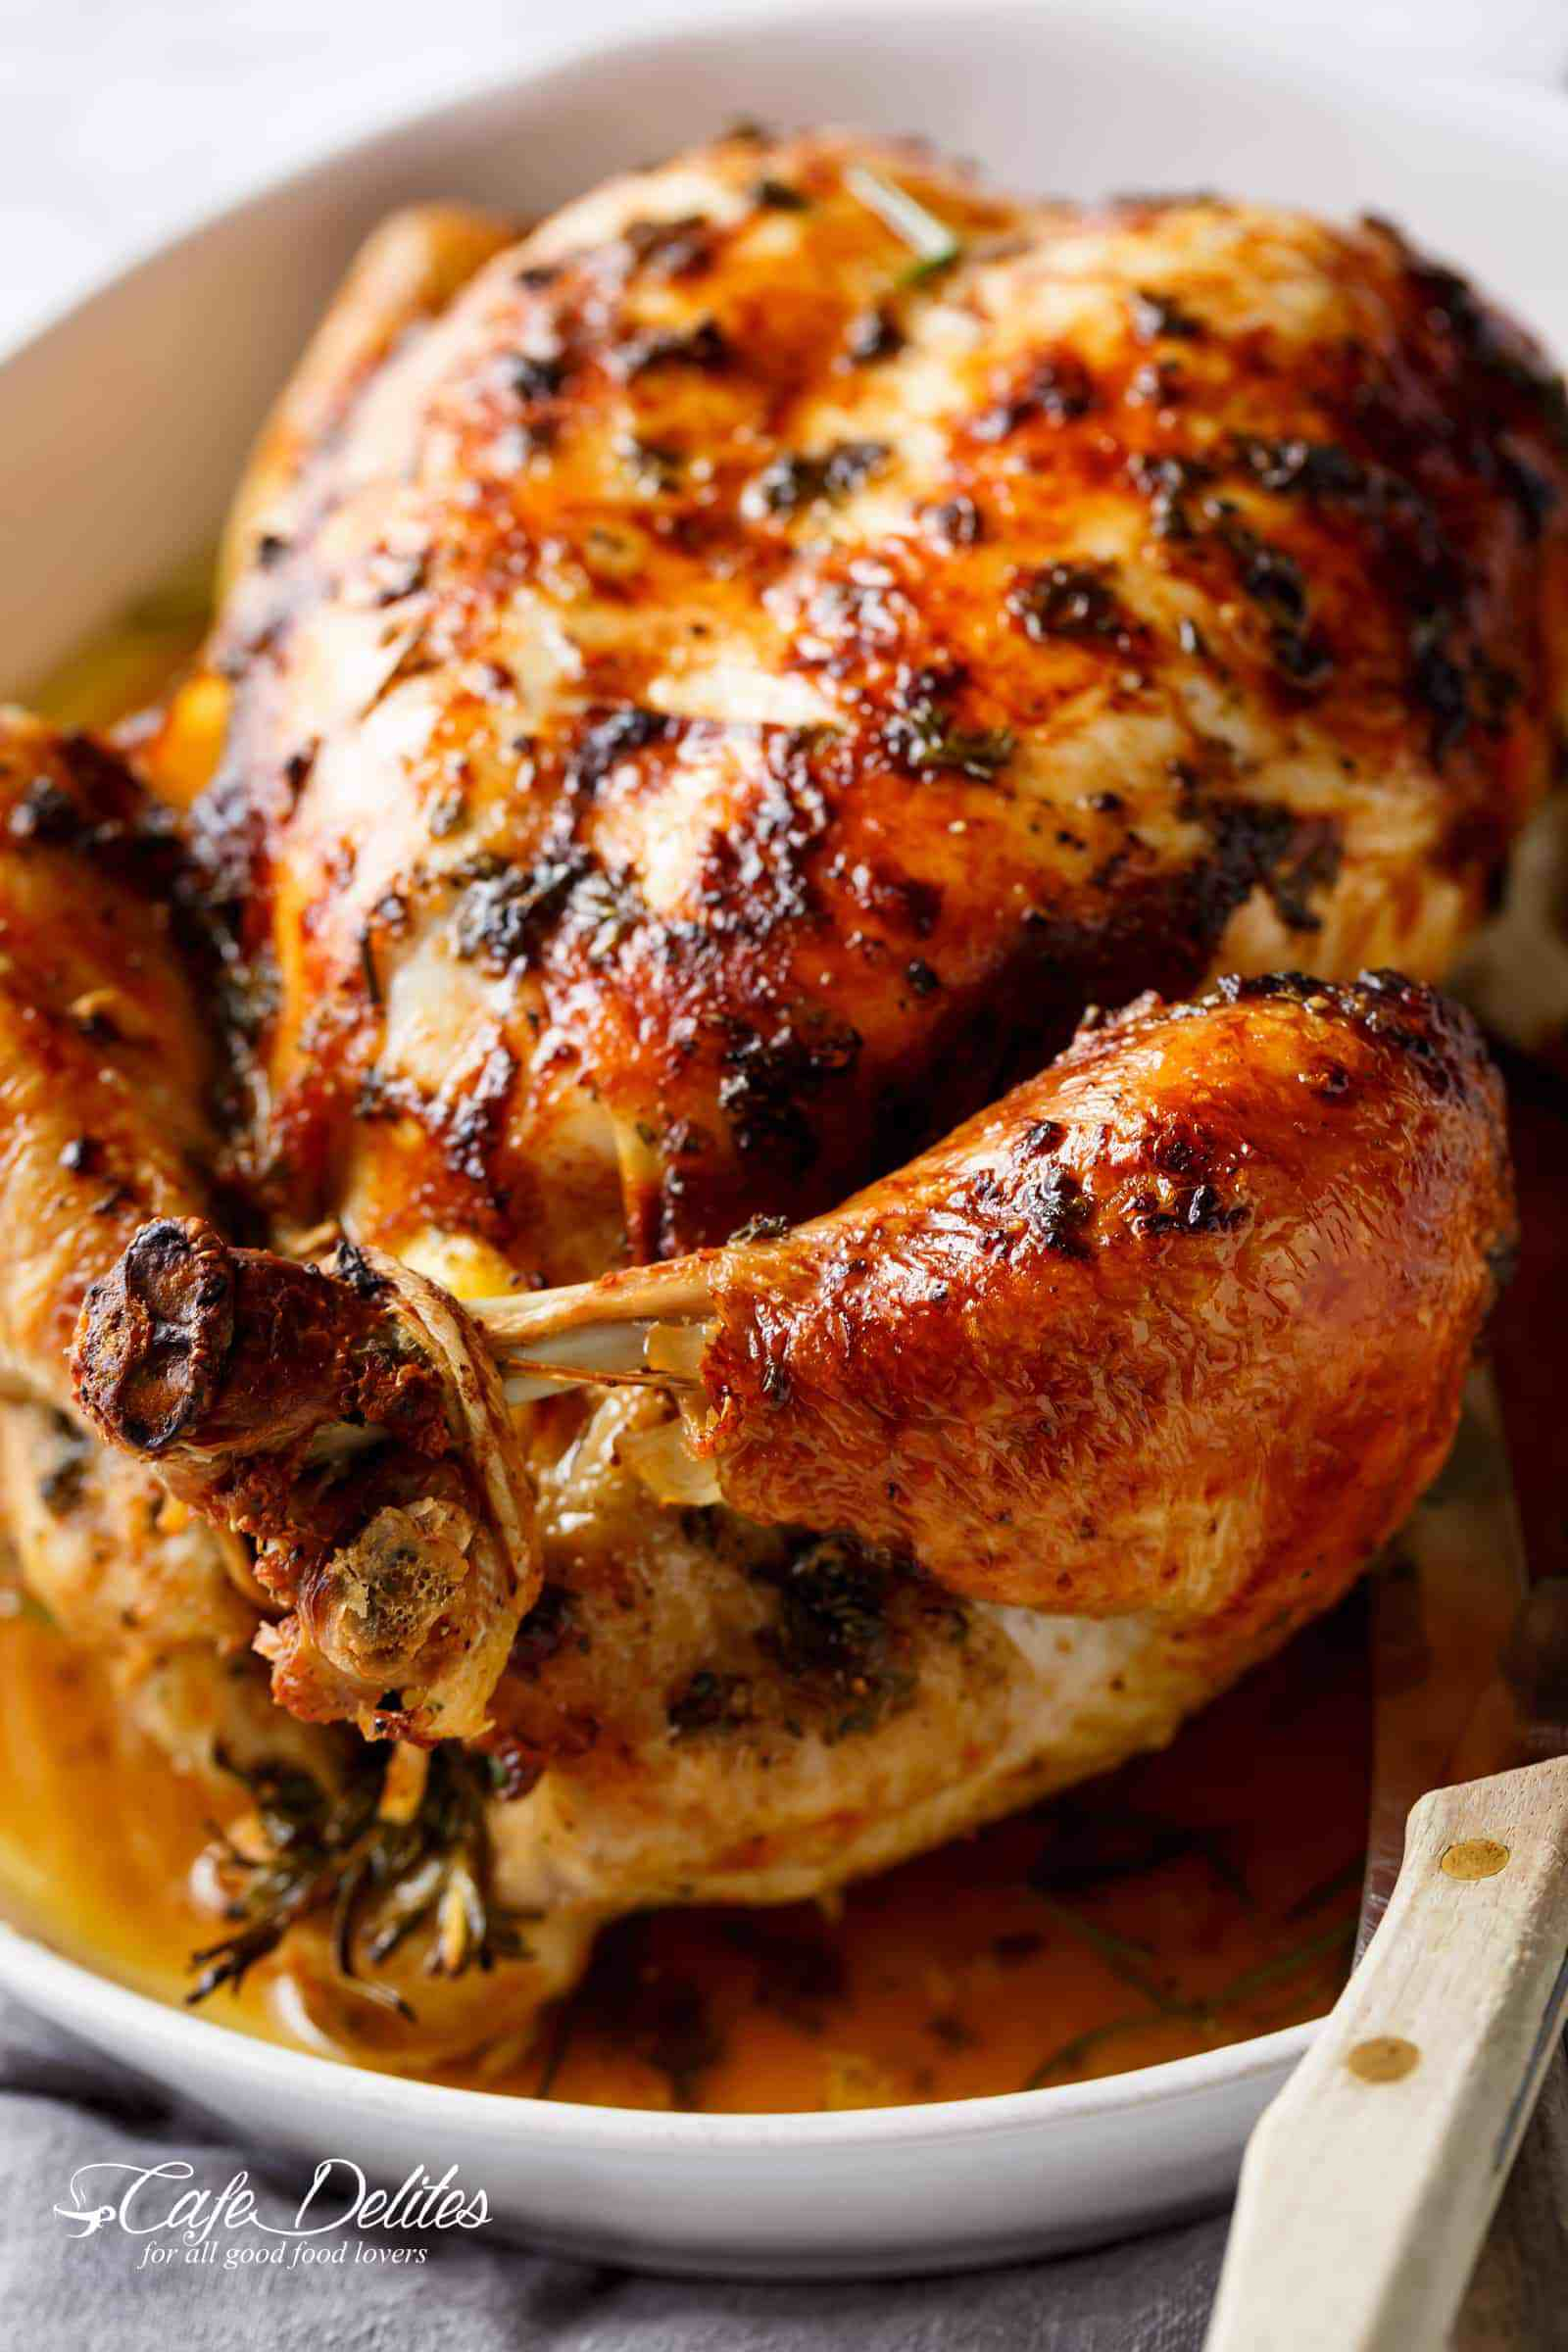 Learn to roast a chicken Image